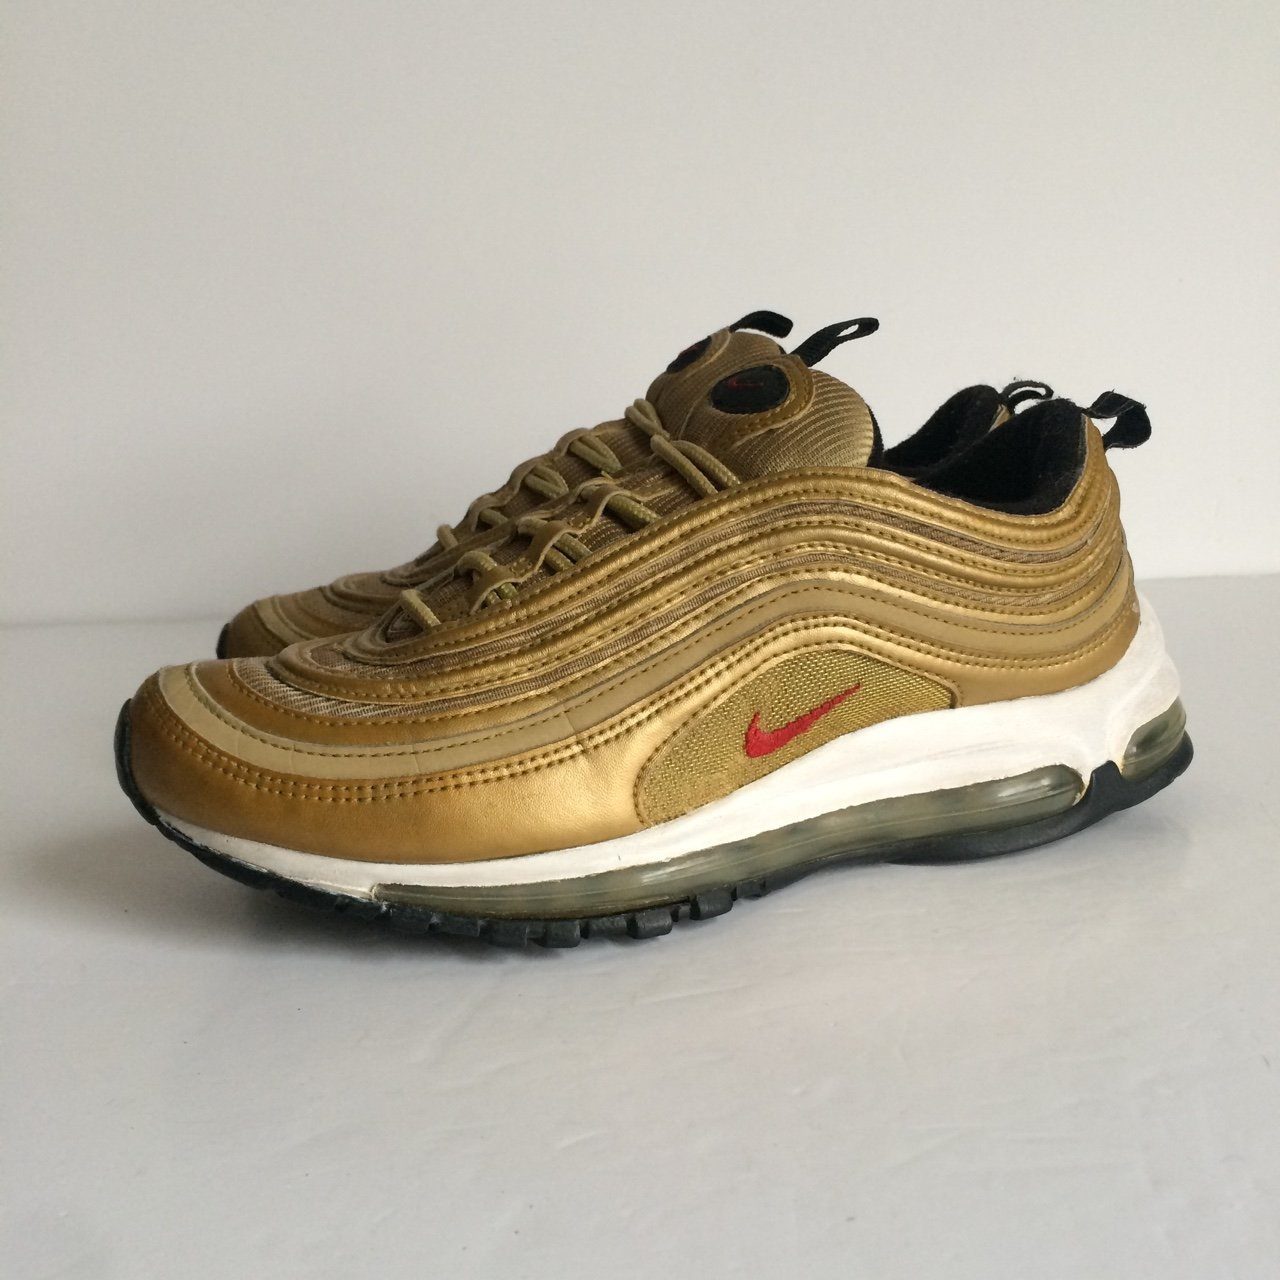 95e568f866 @johnsvintage. 3 years ago. Portsmouth, UK. Vintage Nike Air Max 97 ...